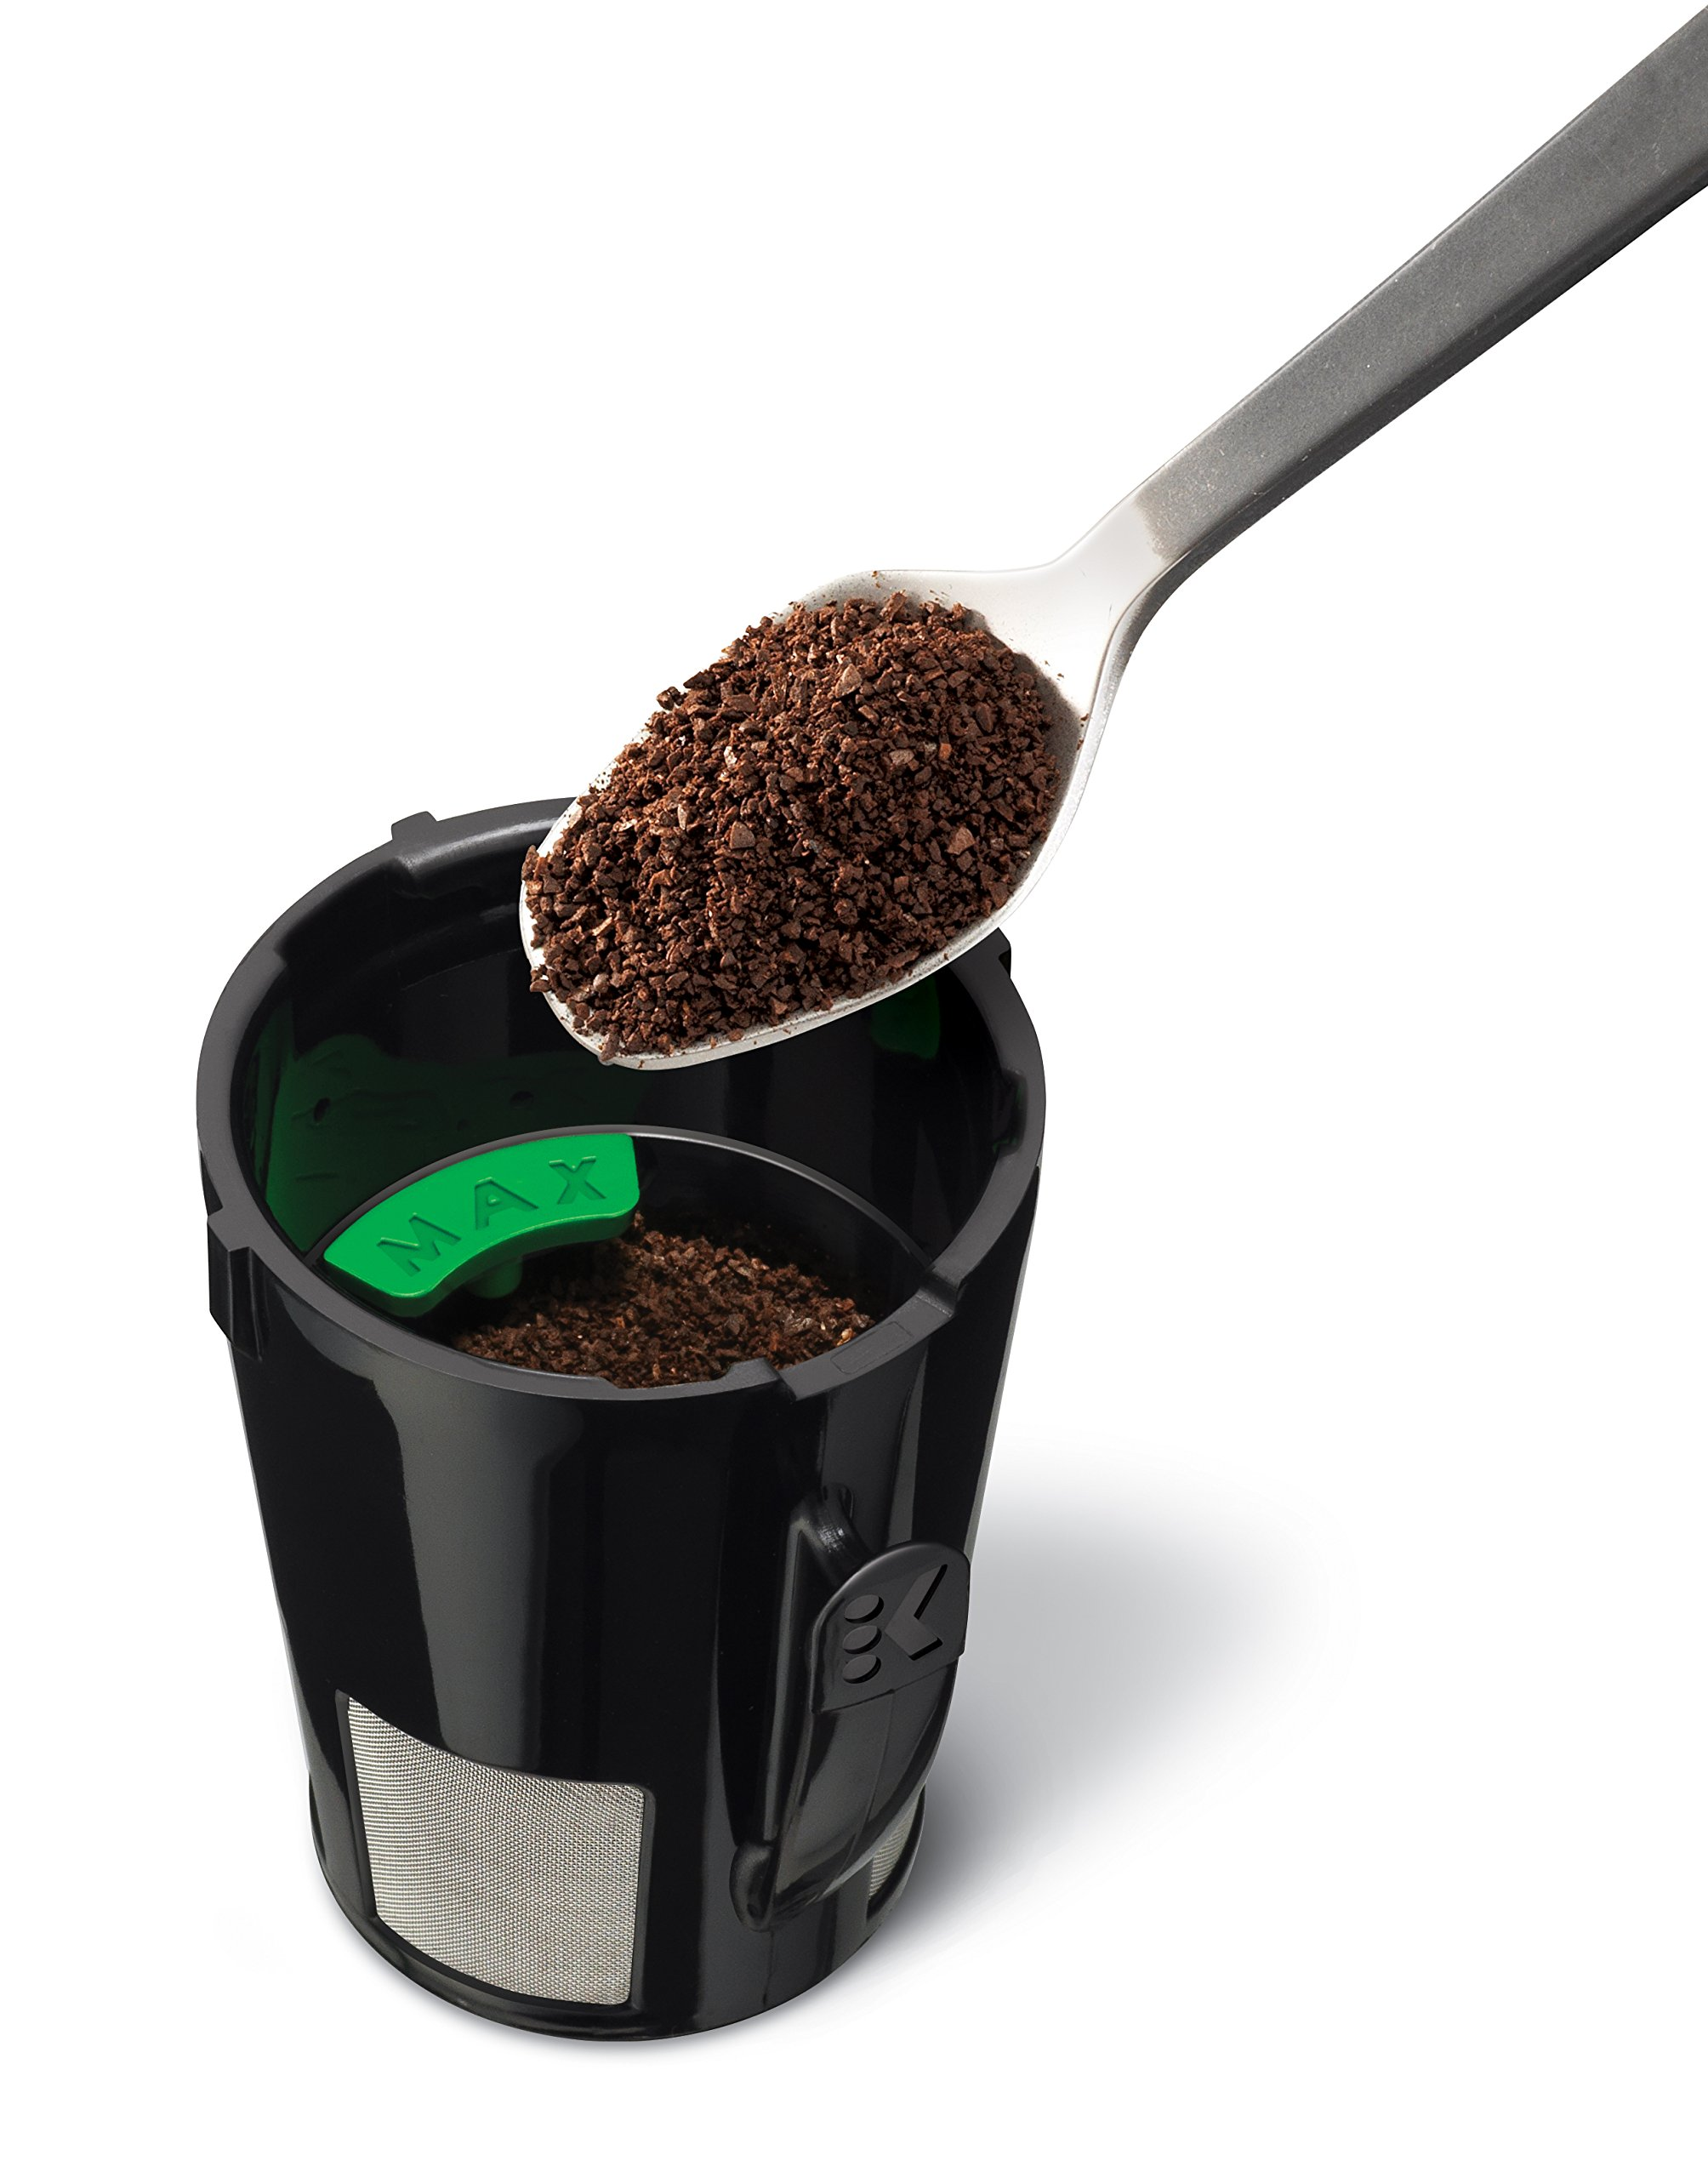 Keurig 2.0 My K-Cup Reusable Ground Coffee Filter, Compatible with All 2.0 Keurig K-Cup Pod Coffee Makers by Keurig (Image #4)